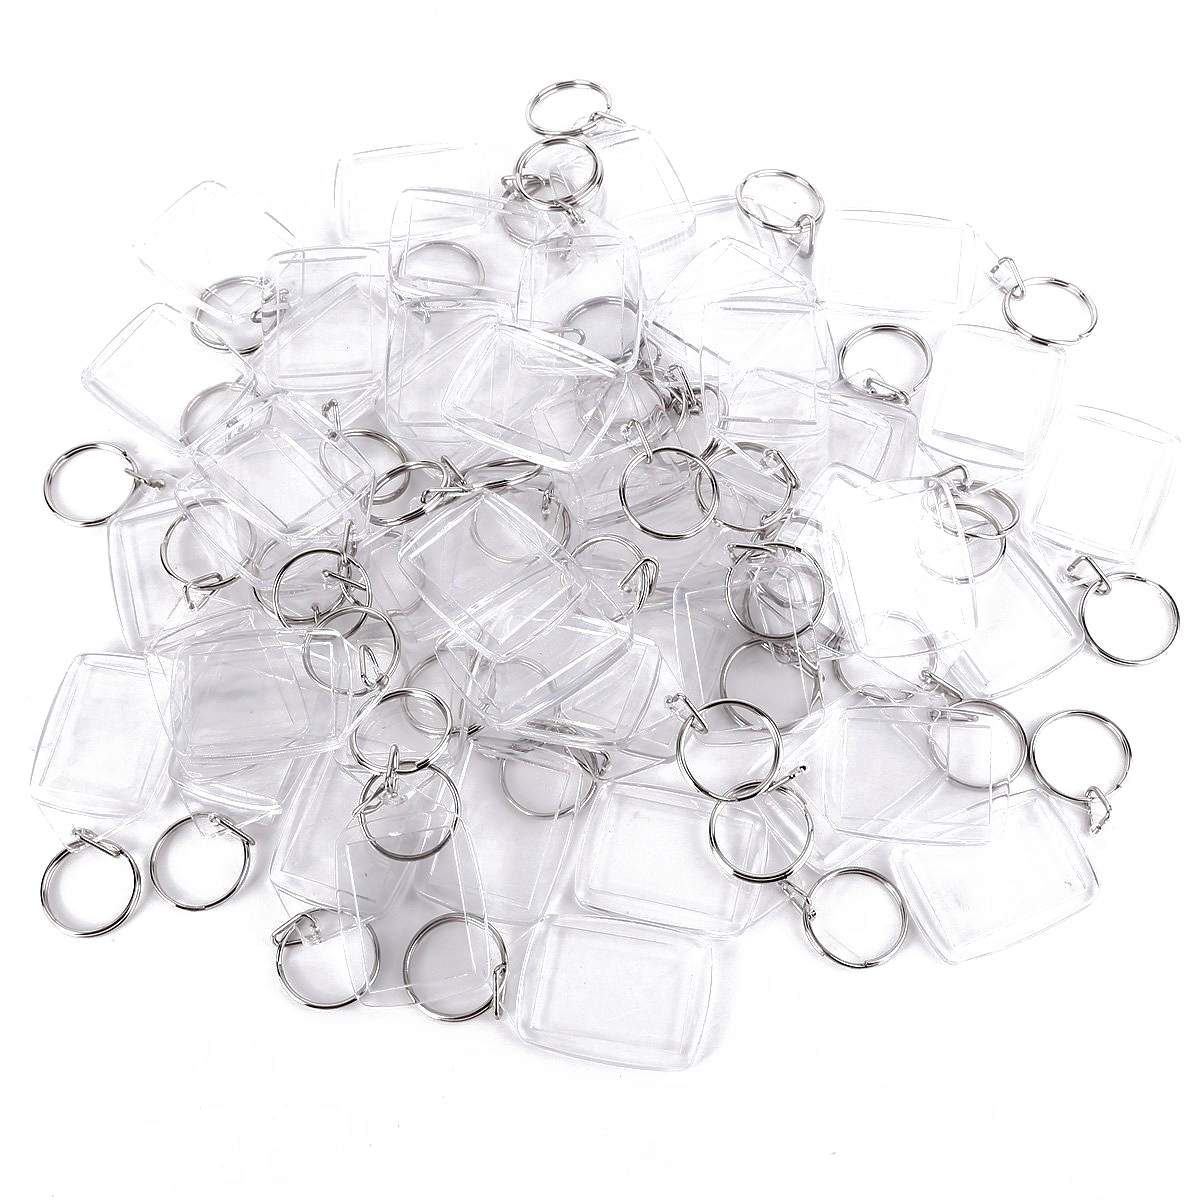 50 Piece Acrylic Keychain for Passport picture Photo image Blank Keyrings